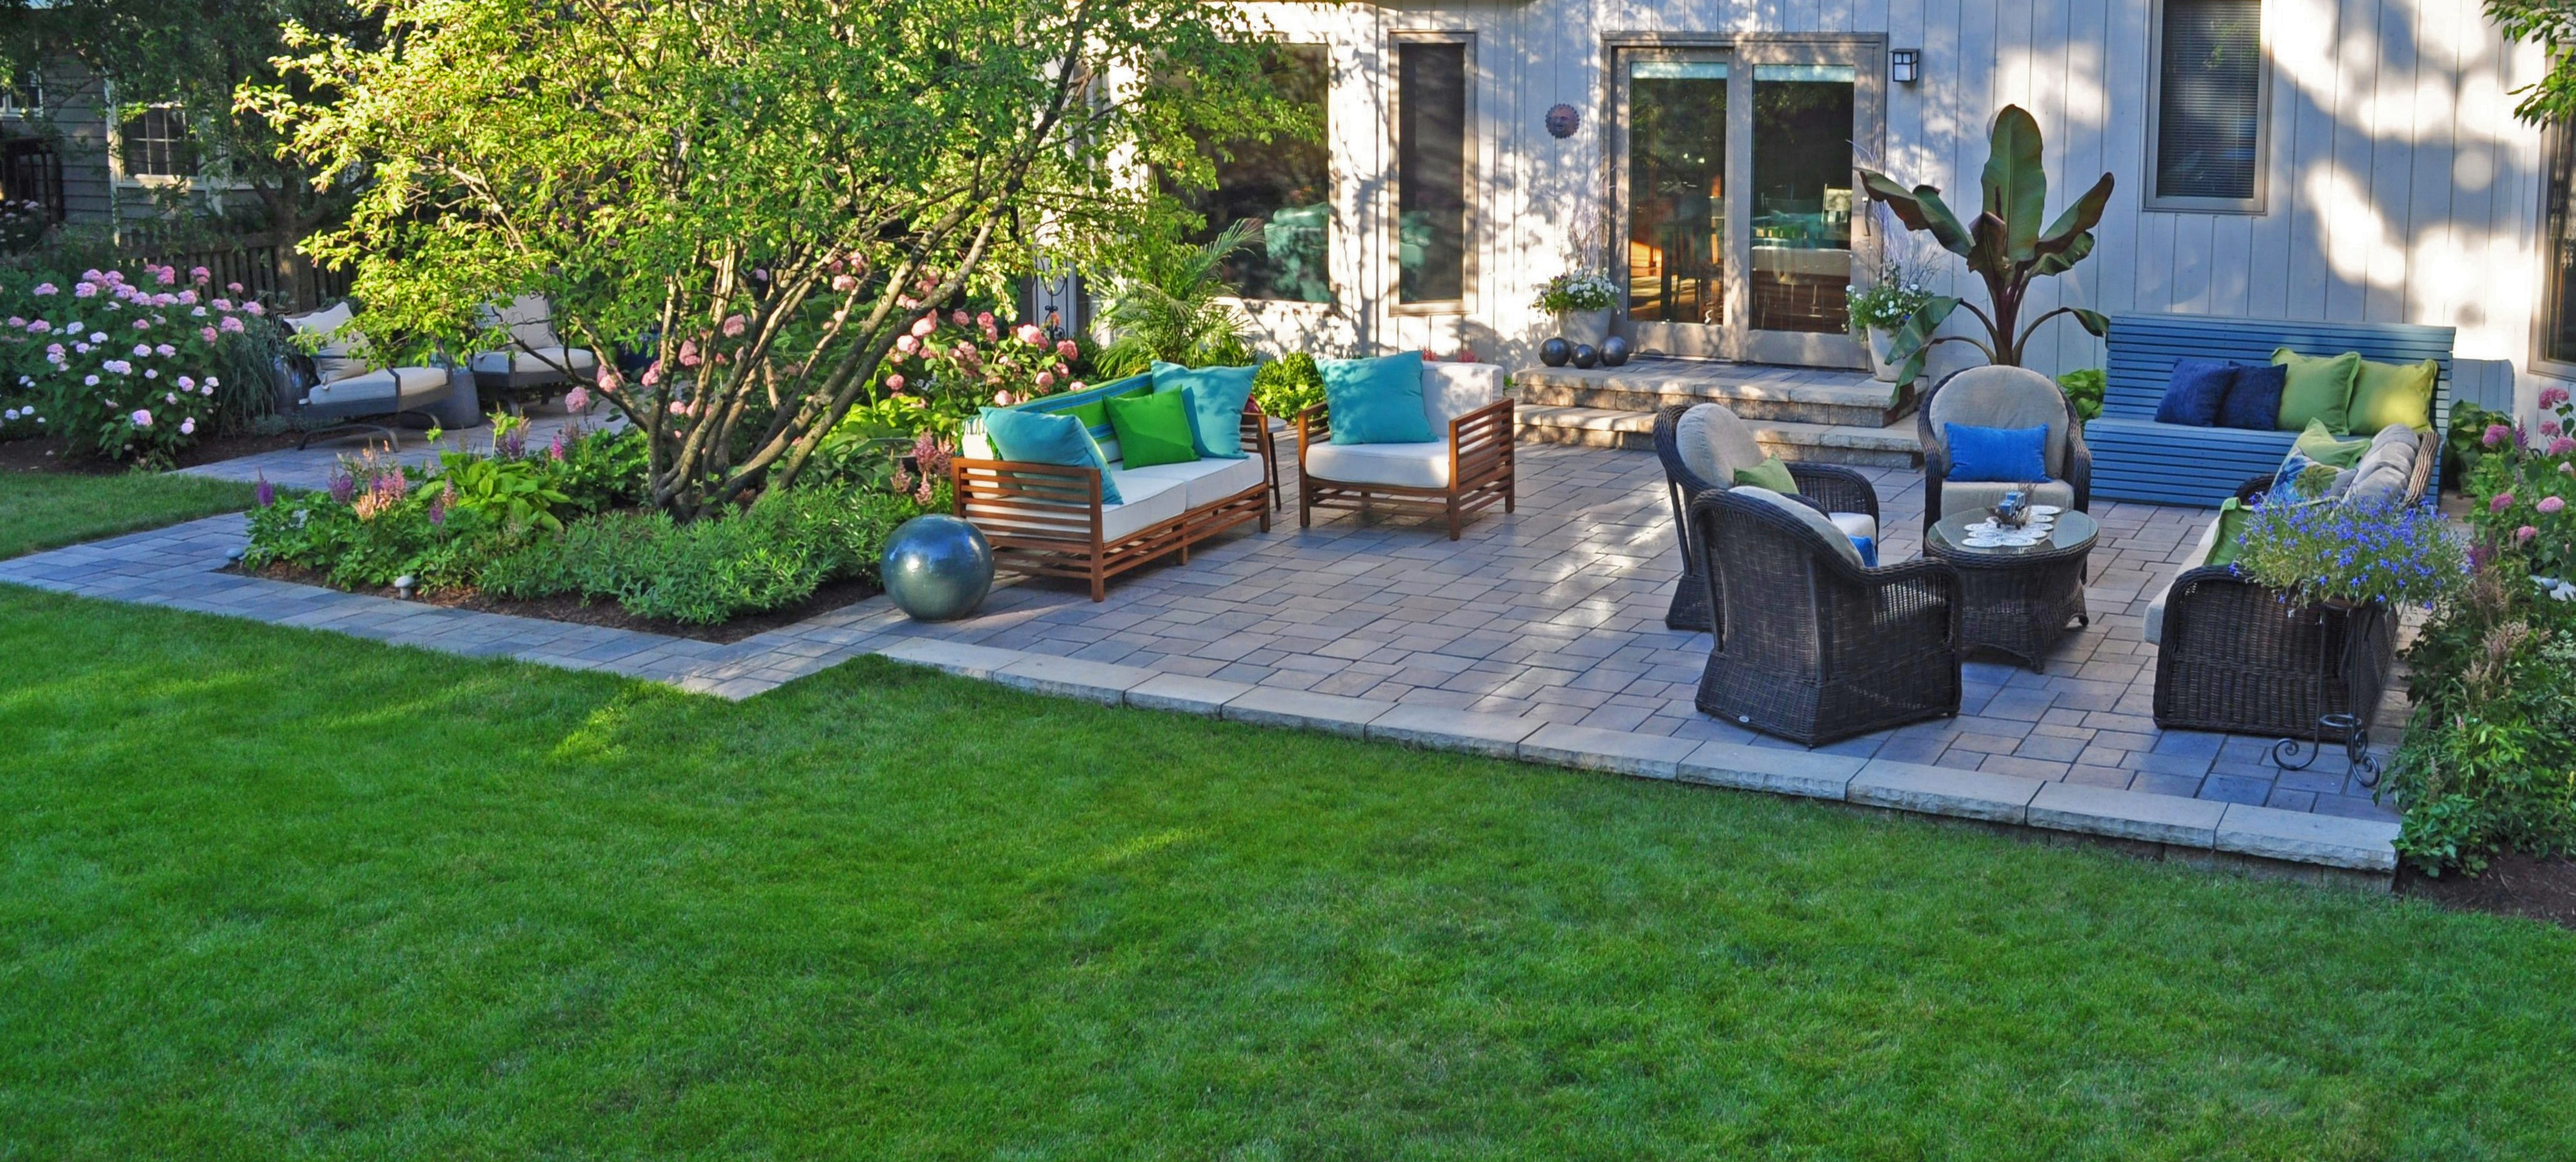 Concrete Pavers And Natural Stone For Your Patio In Southampton, Long  Island, NY